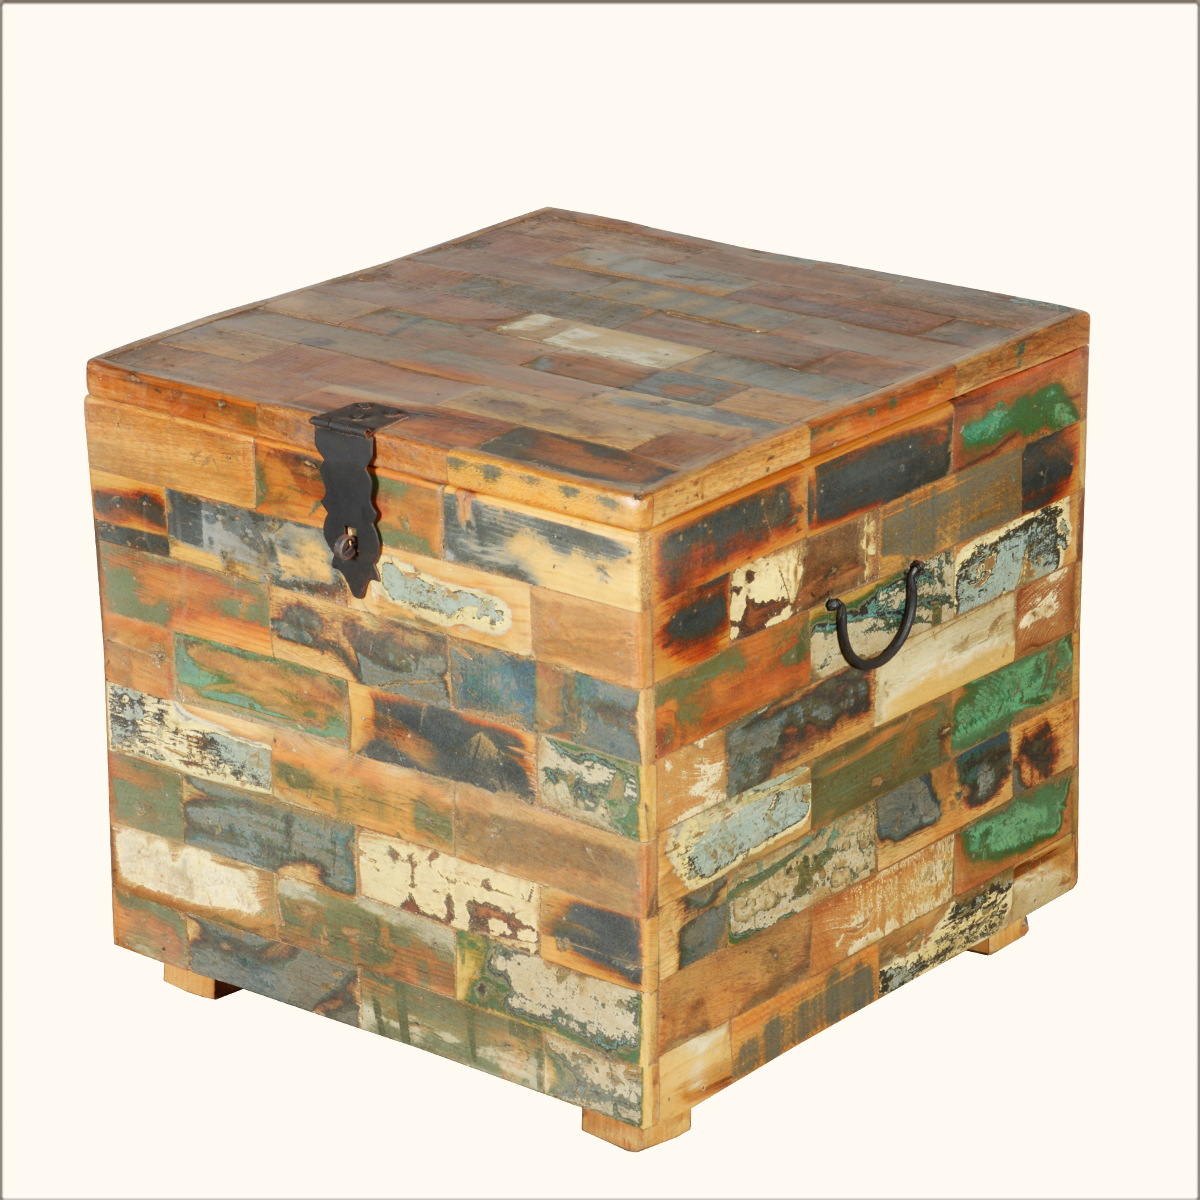 Reclaimed Wood Square Distressed Rustic Coffee Table Storage Chest Box Furniture Ebay